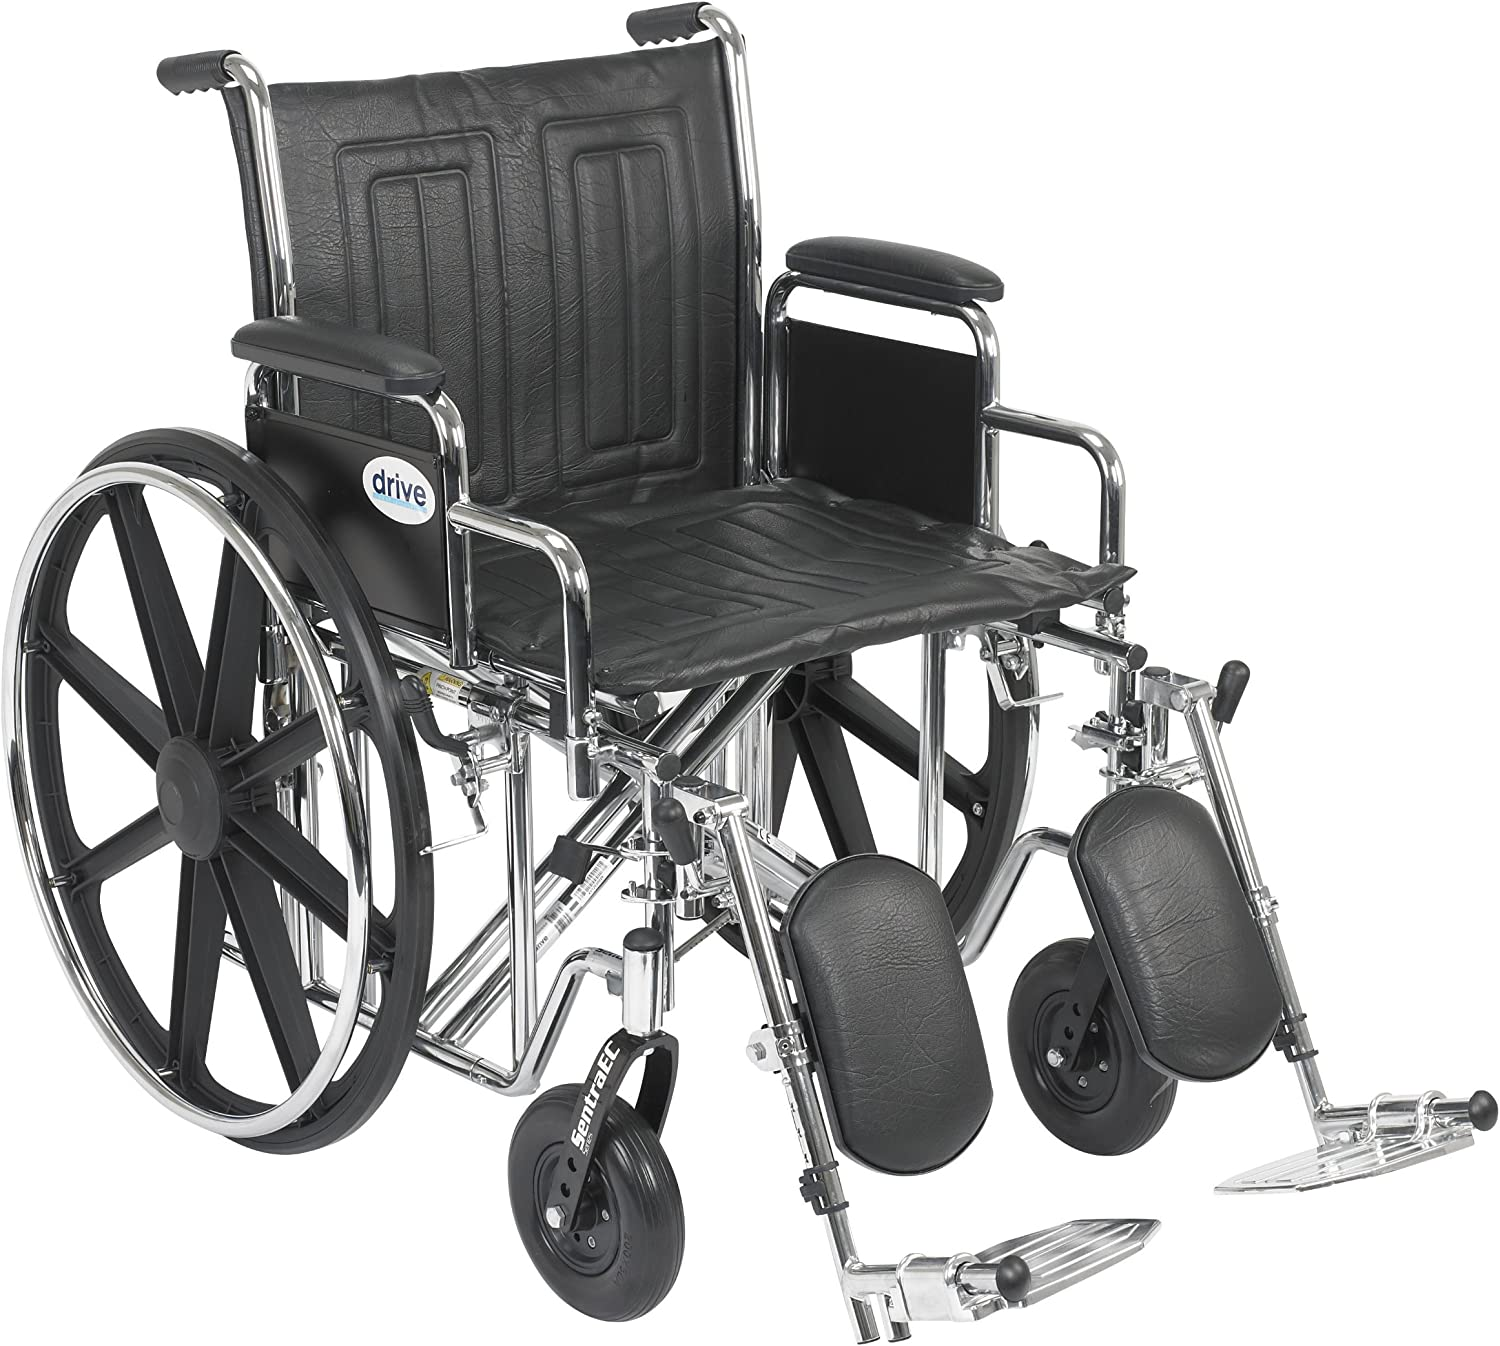 Drive Medical Sentra EC Heavy Duty Wheelchair with Various Arm Styles and Front Rigging Options, Black, Bariatric, 20 Inch 91kut4N7RCL